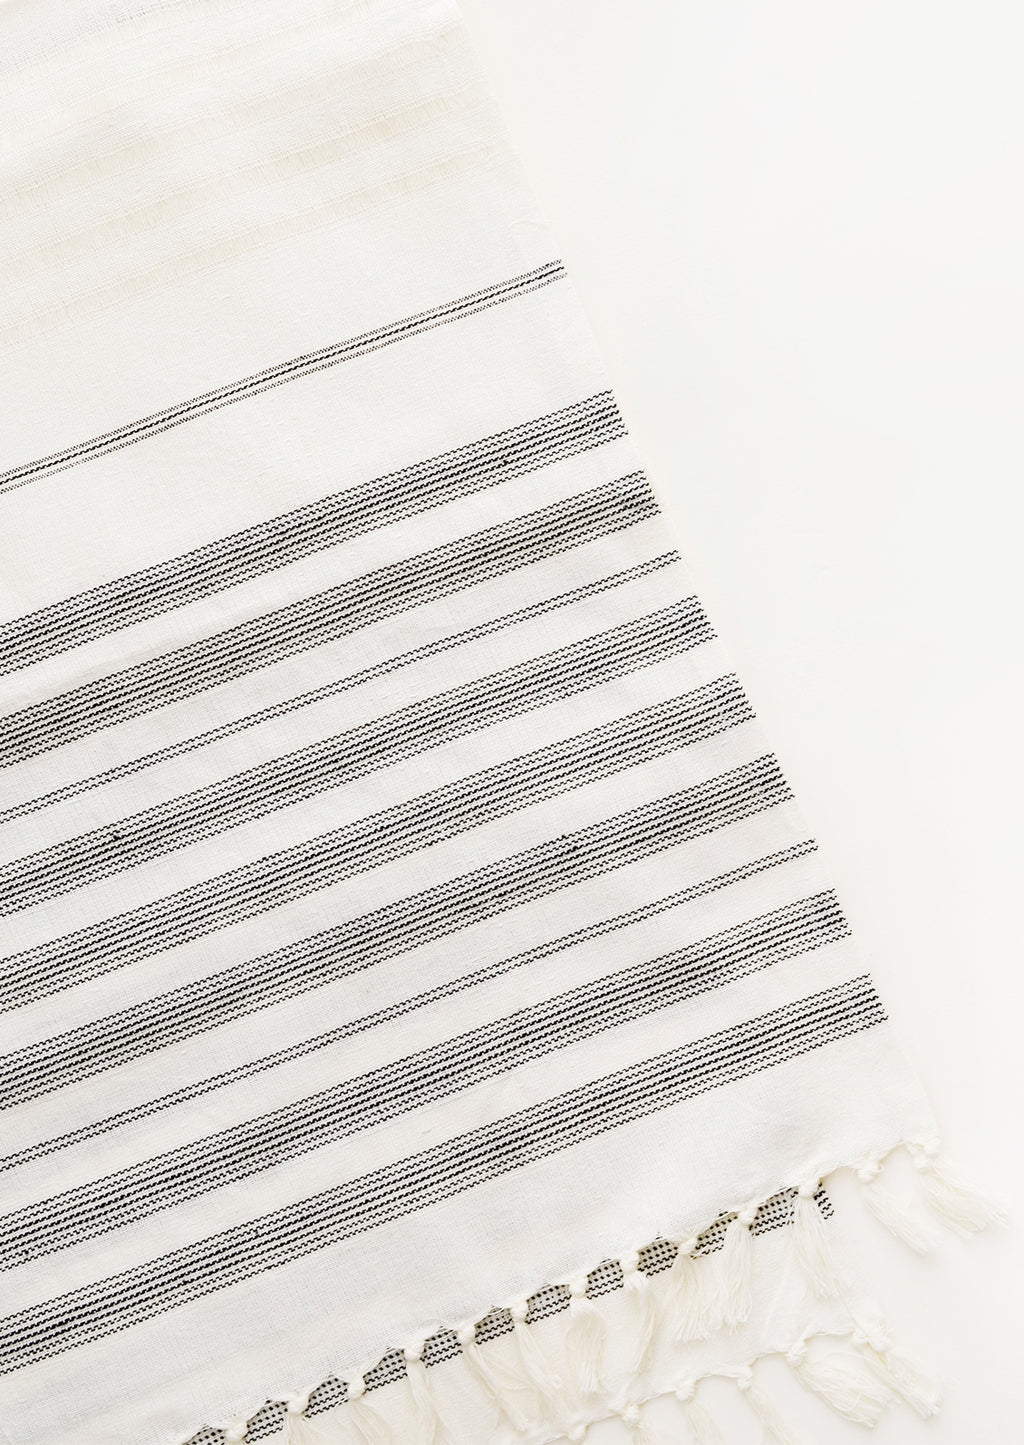 3: Ivory and black striped woven cotton table runner with fringed ends